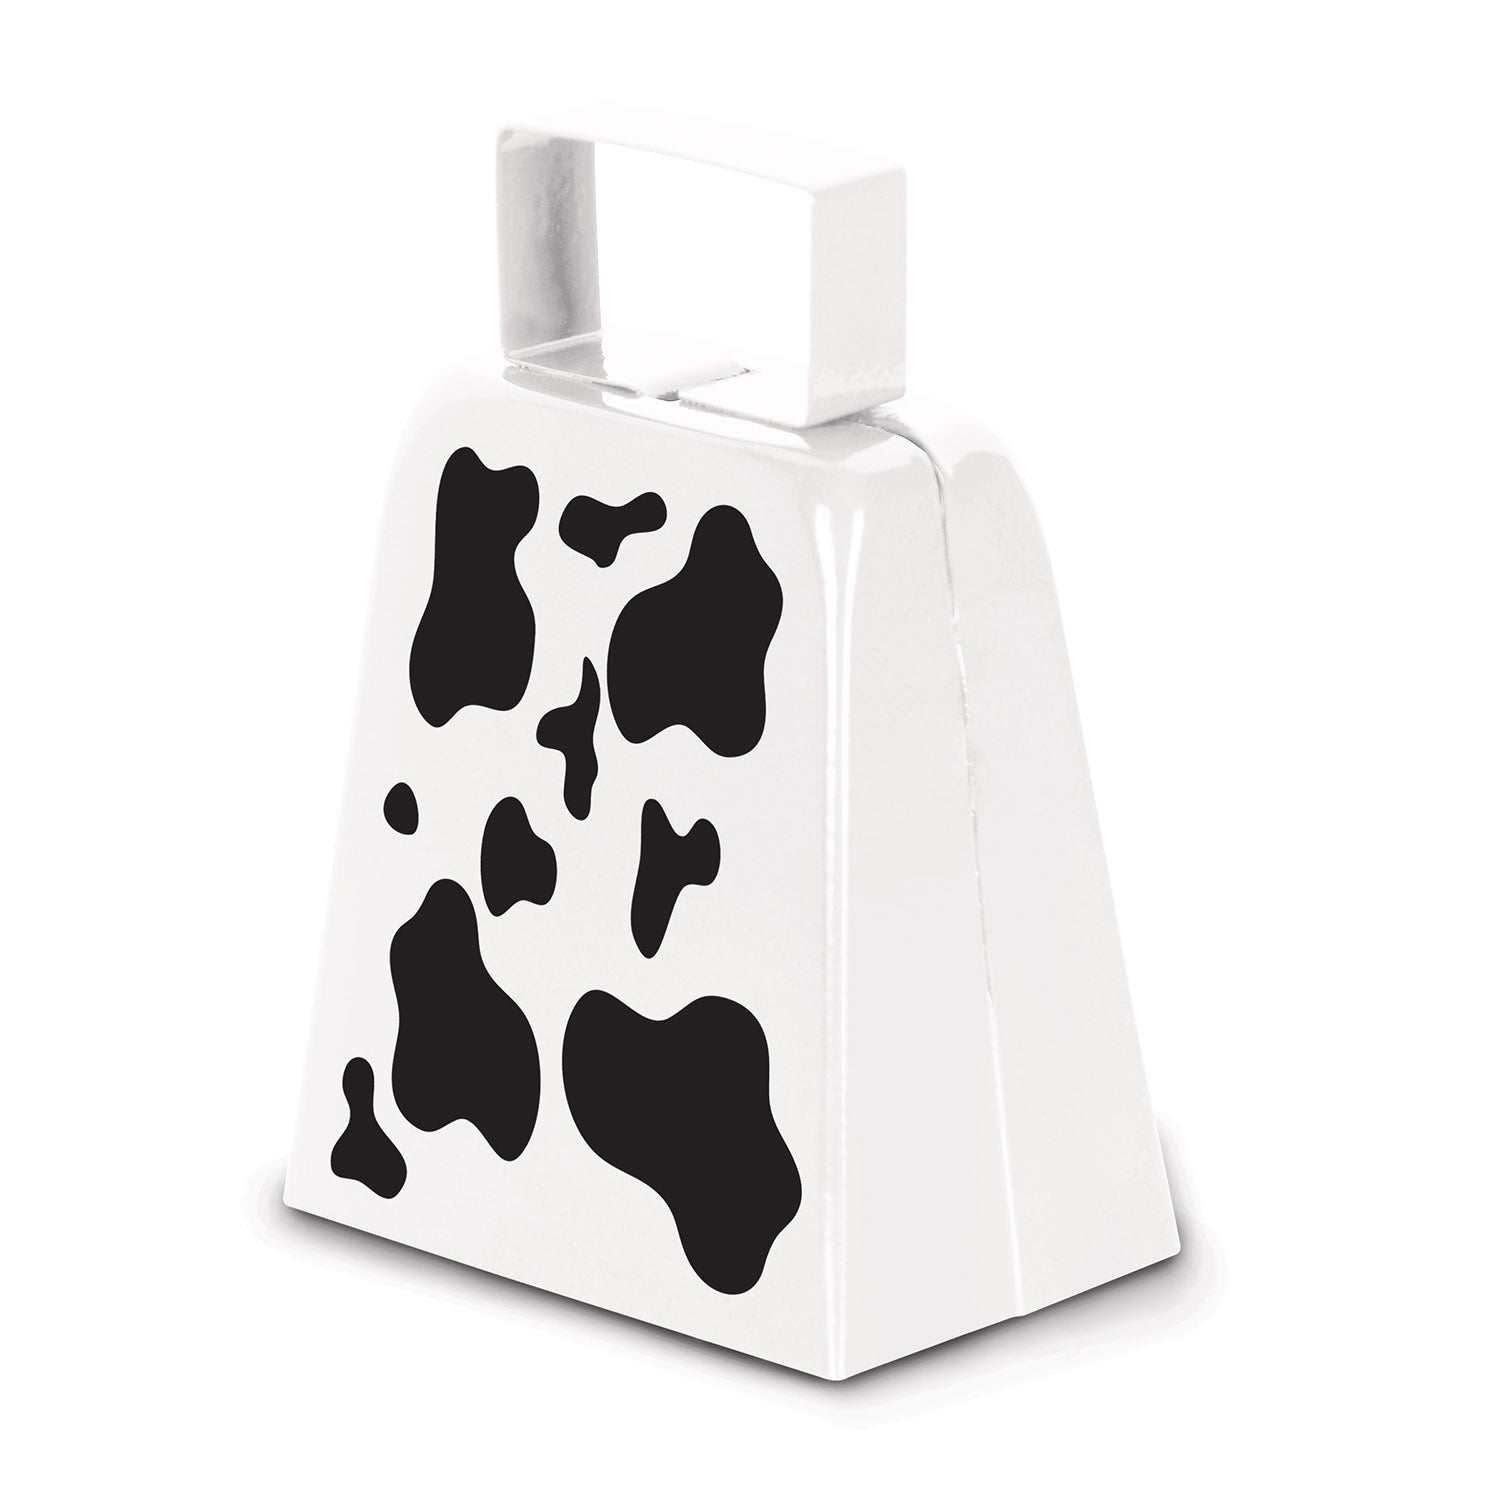 Cow Print Cowbell by Beistle - Farm Theme Decorations